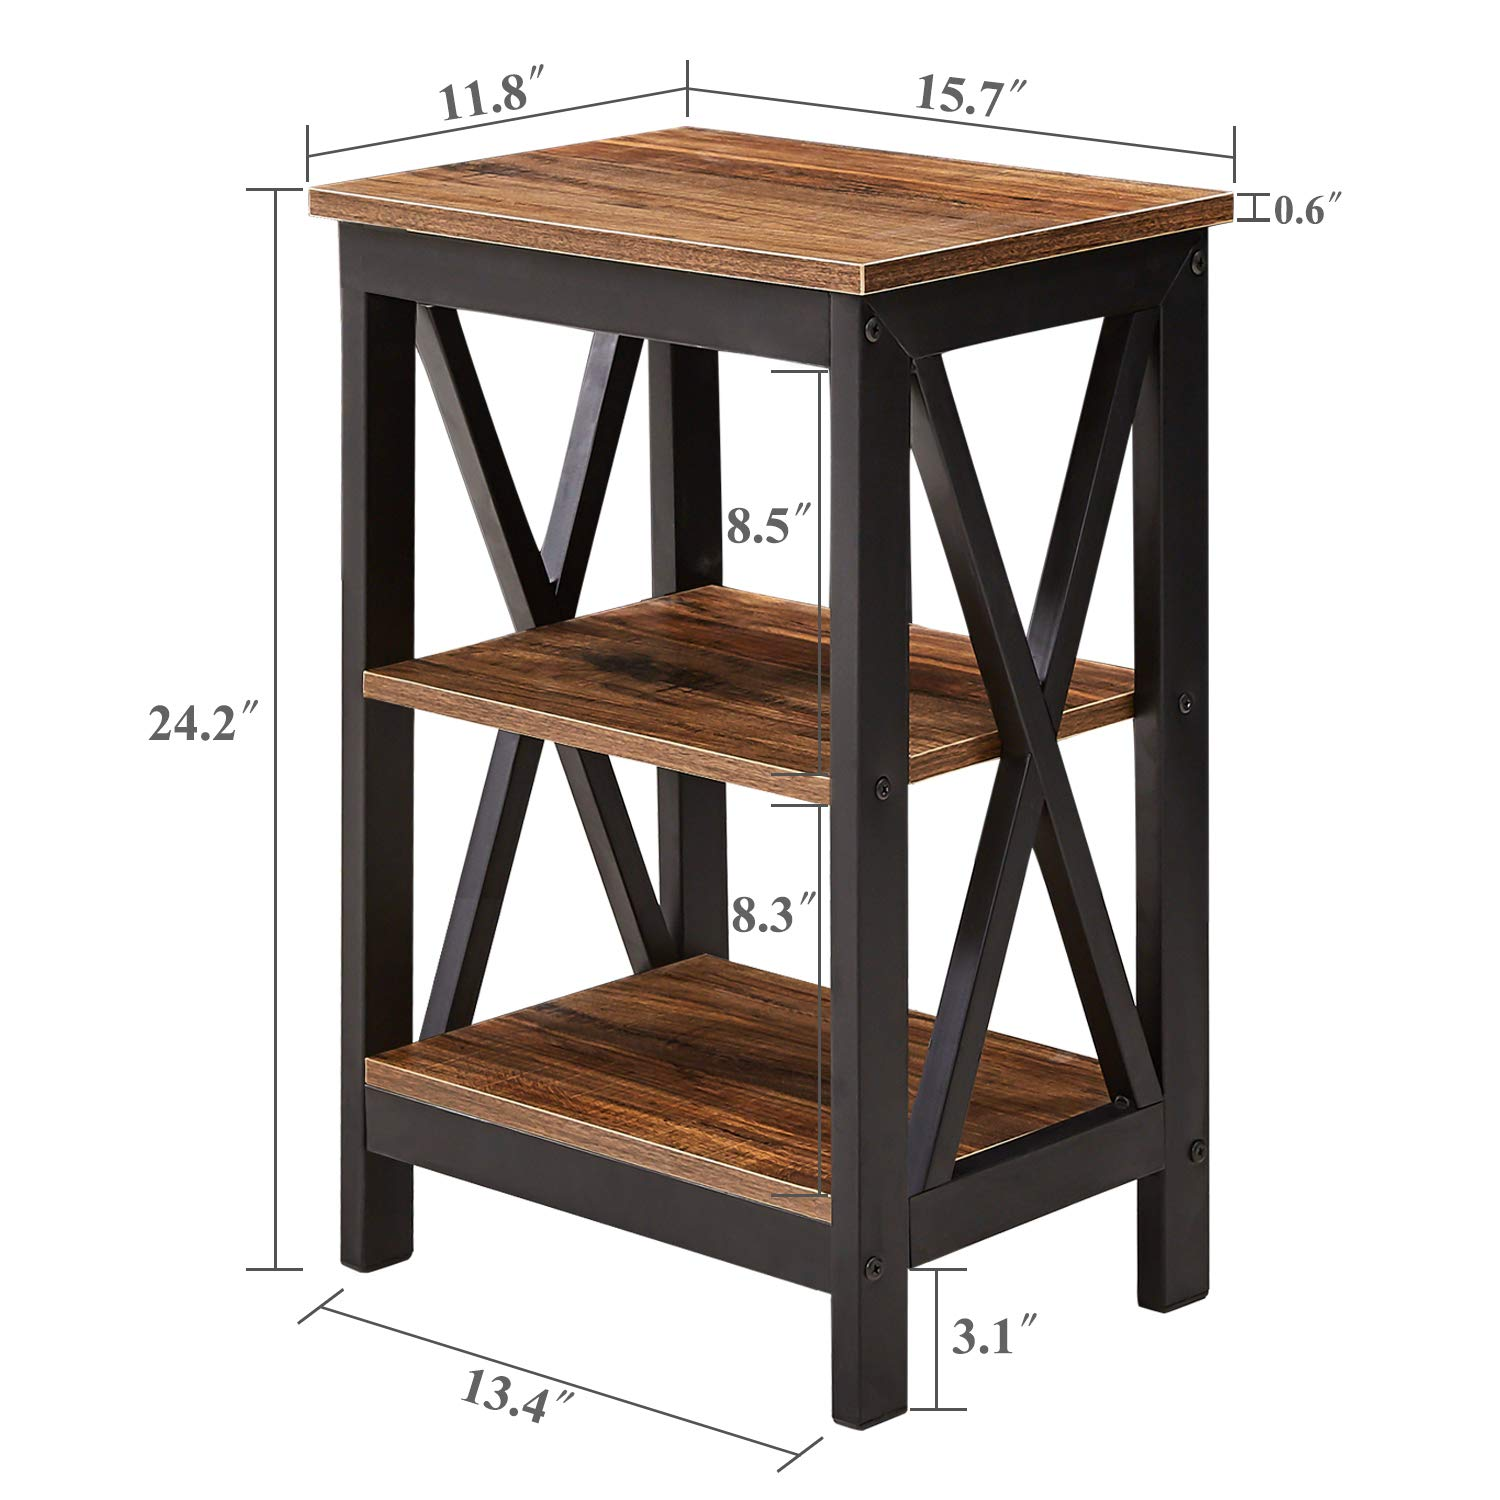 Tier Nightstand Wood Bedside End Table with Door Large Closed Cabinet Storage Compartment /& Open Shelf Modern Furniture for Bedroom Livingroom Dorm Kids Room /& e-Book by jn.widetrade